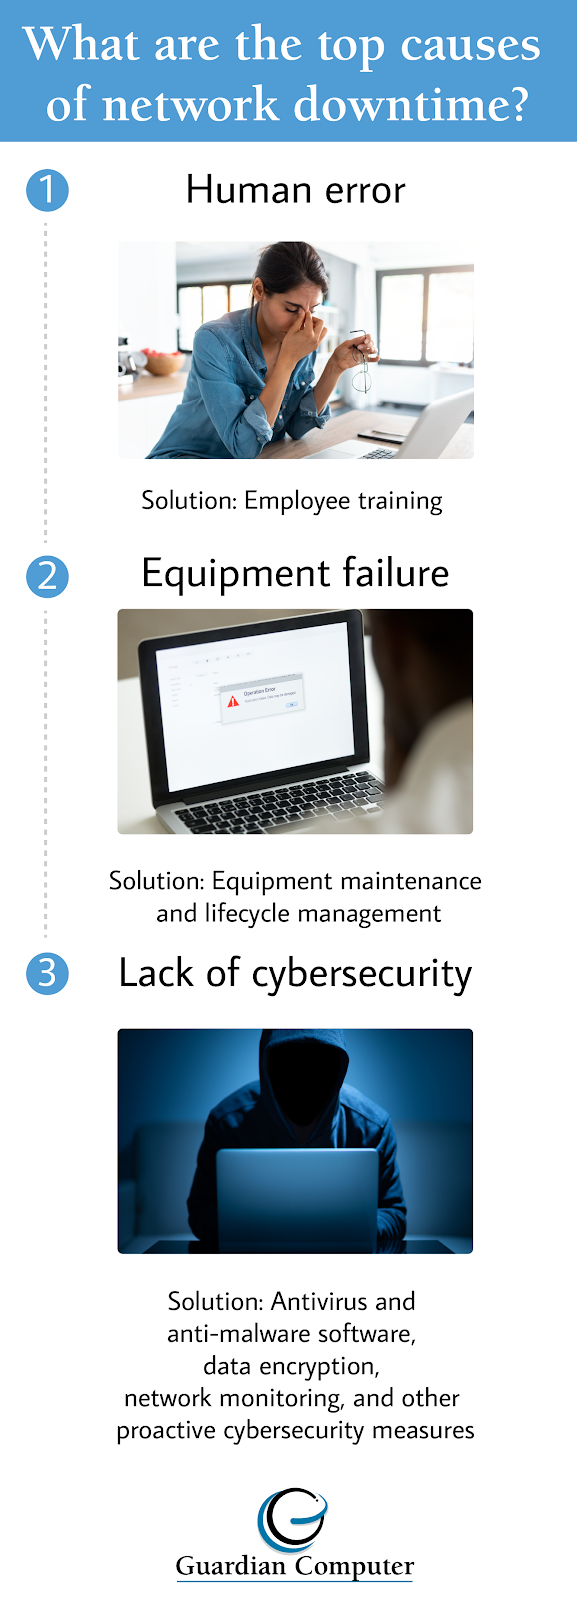 Human error, equipment failure, and lack of cybersecurity are top causes contributing to the cost of network downtime.